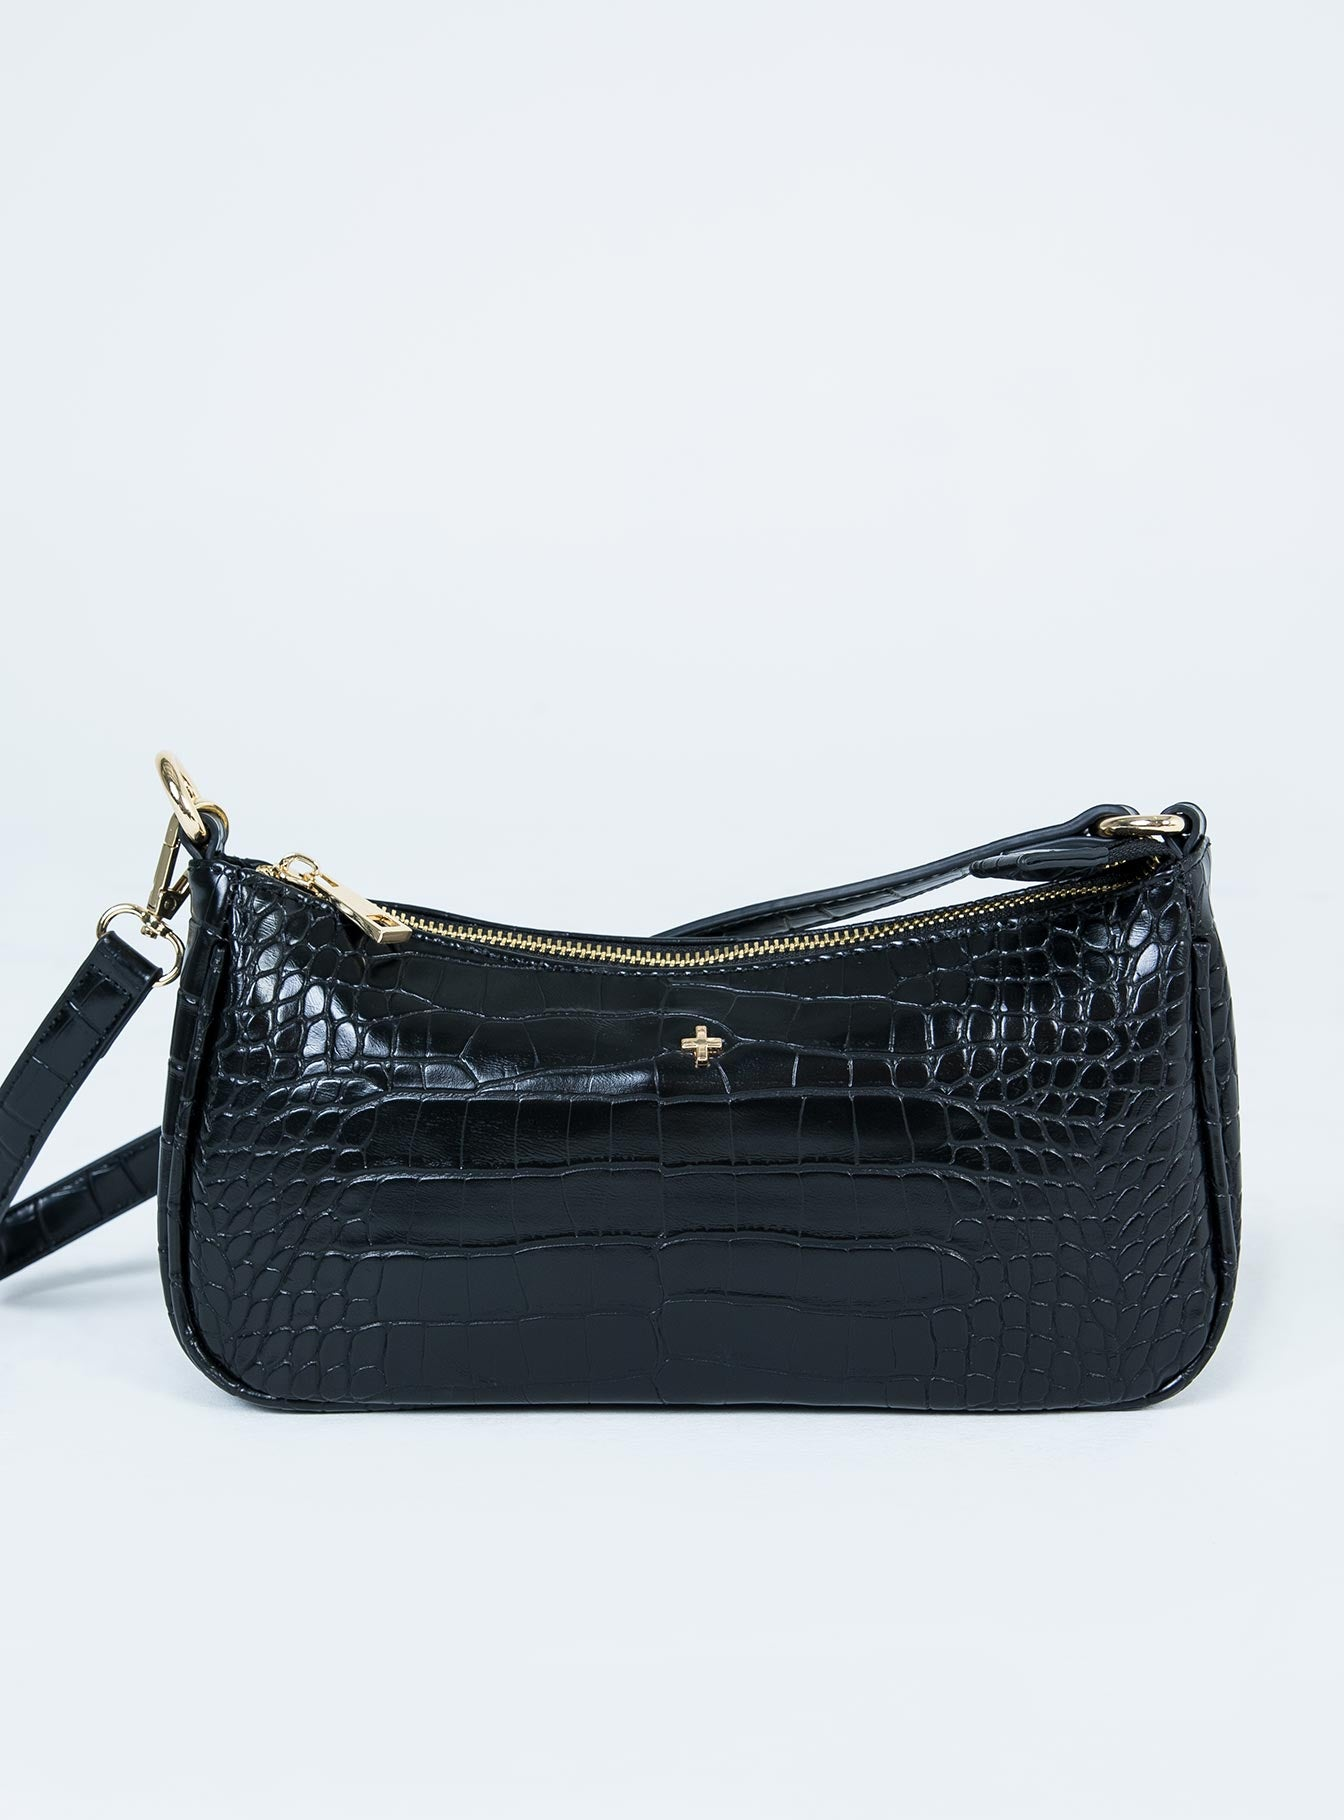 Peta & Jain Piper Bag Black Croc